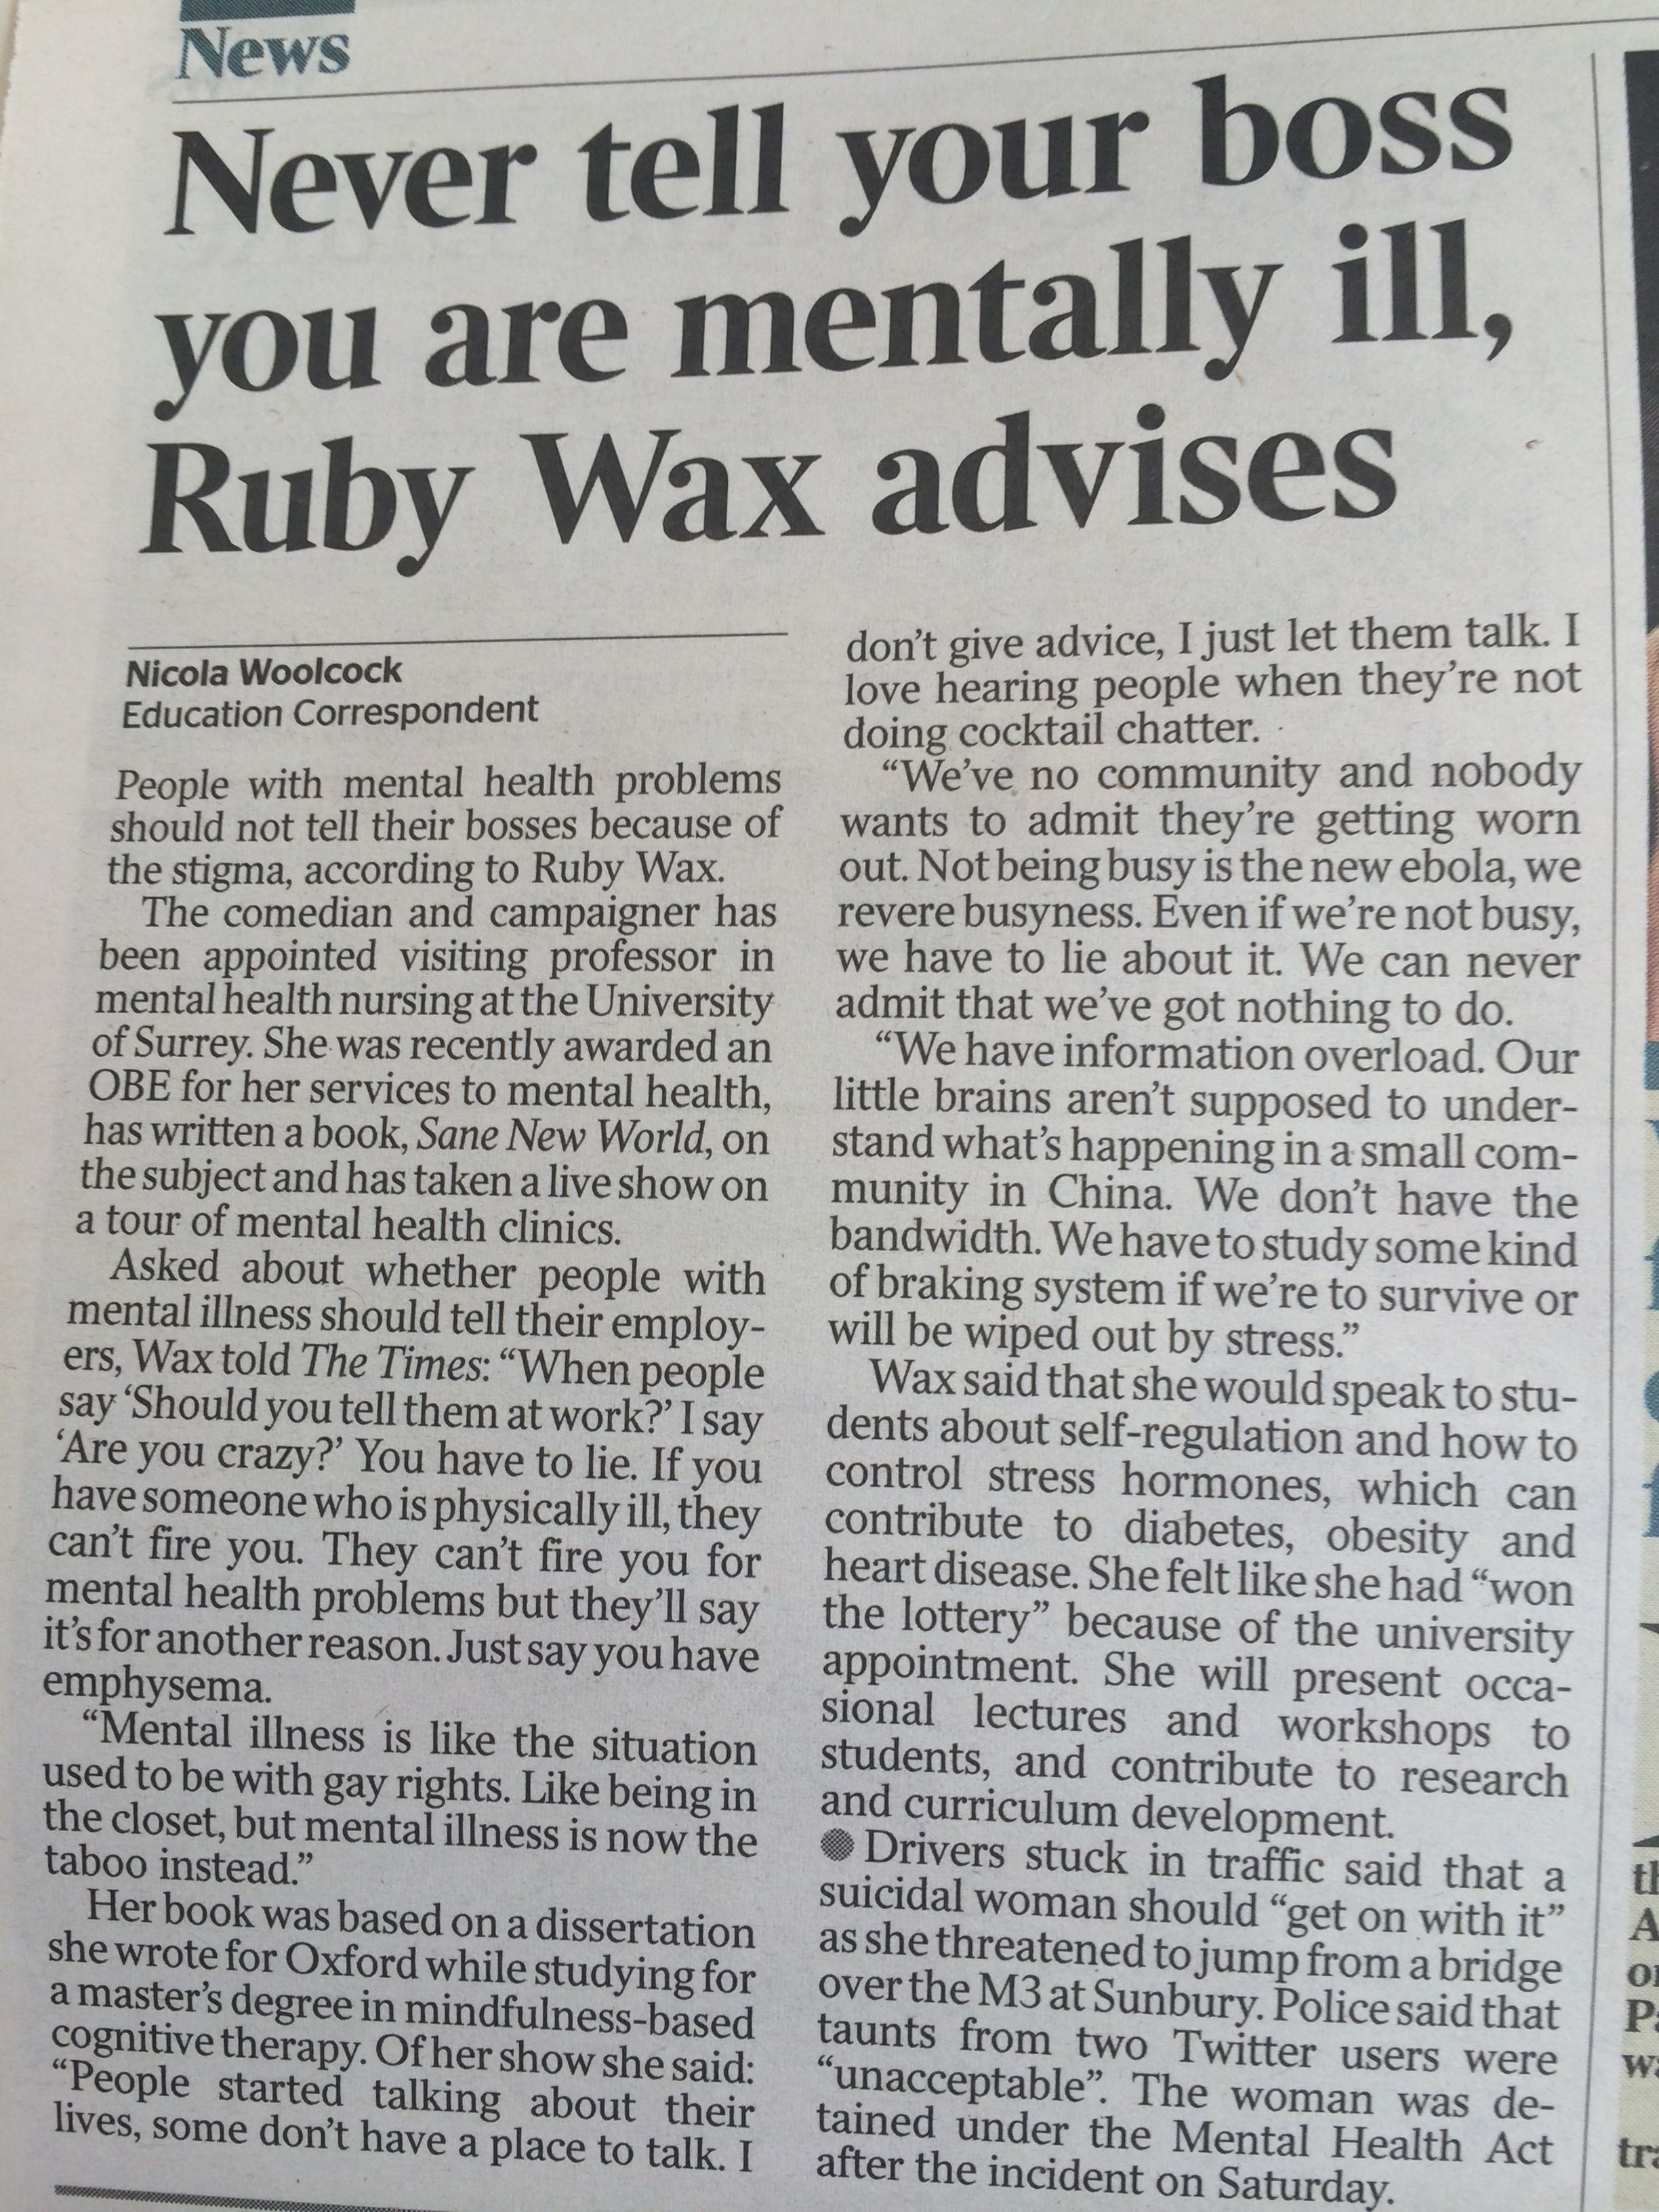 Don't tell your boss if you're mentally ill, Ruby Wax